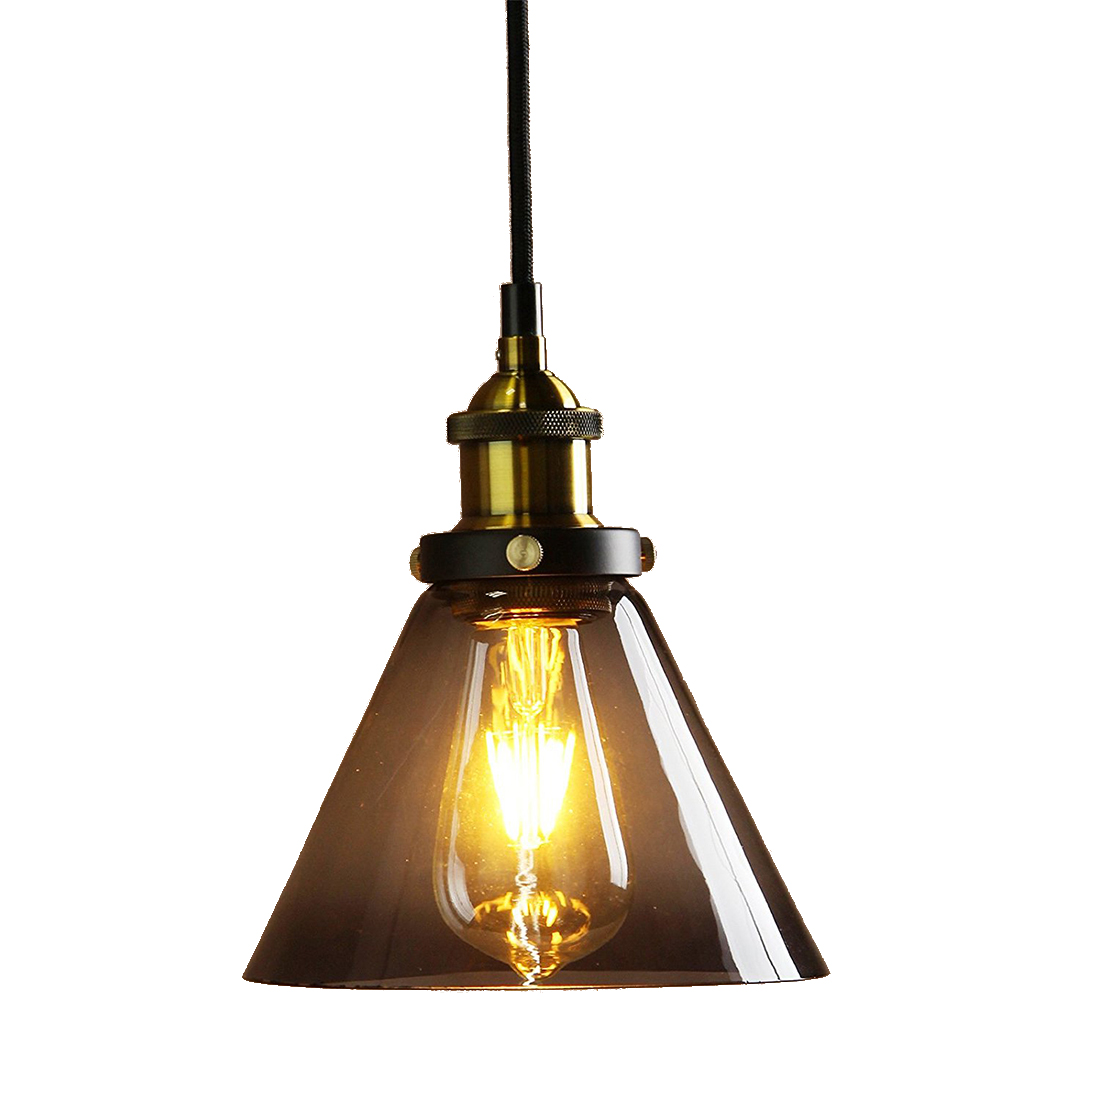 купить Vintage Metal Finish Black Gray Glass Shade Loft Pendant Lamp Retro Vintage Light fitting (diameter 18cm glass shade Brass head) недорого